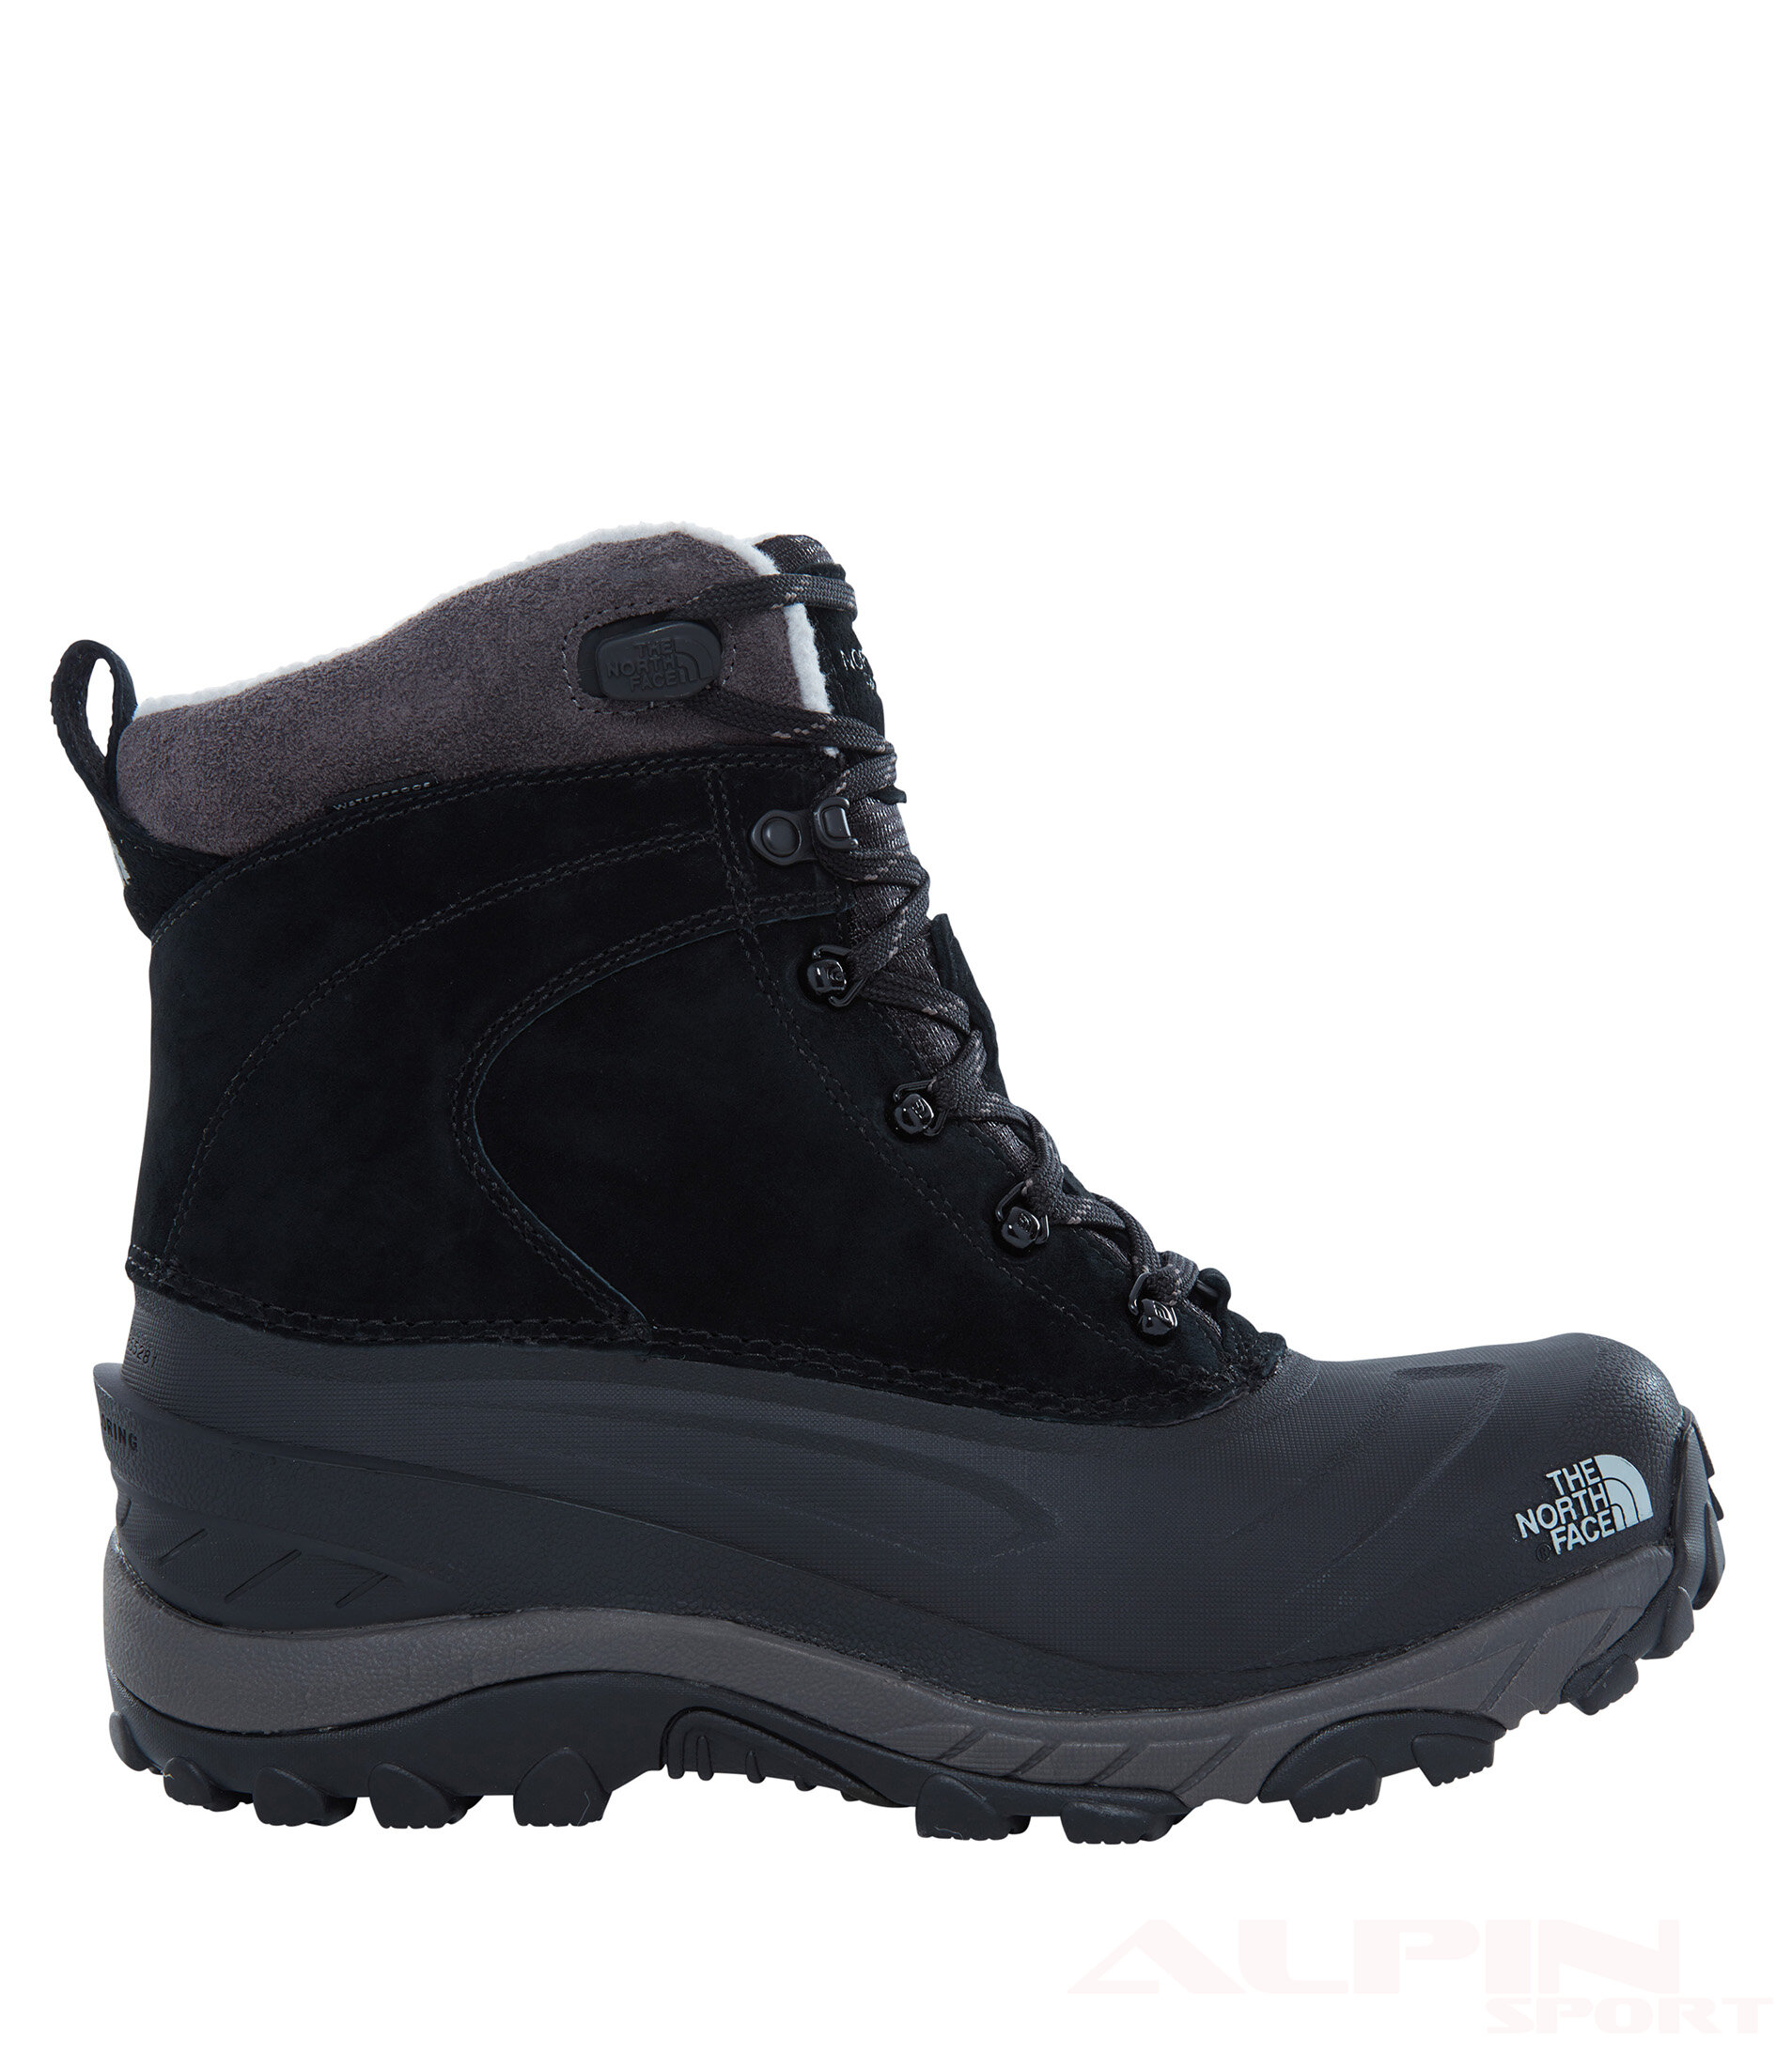 Buty męskie THE NORTH FACE Chilkat III 008_LO_39V6 WE3 0